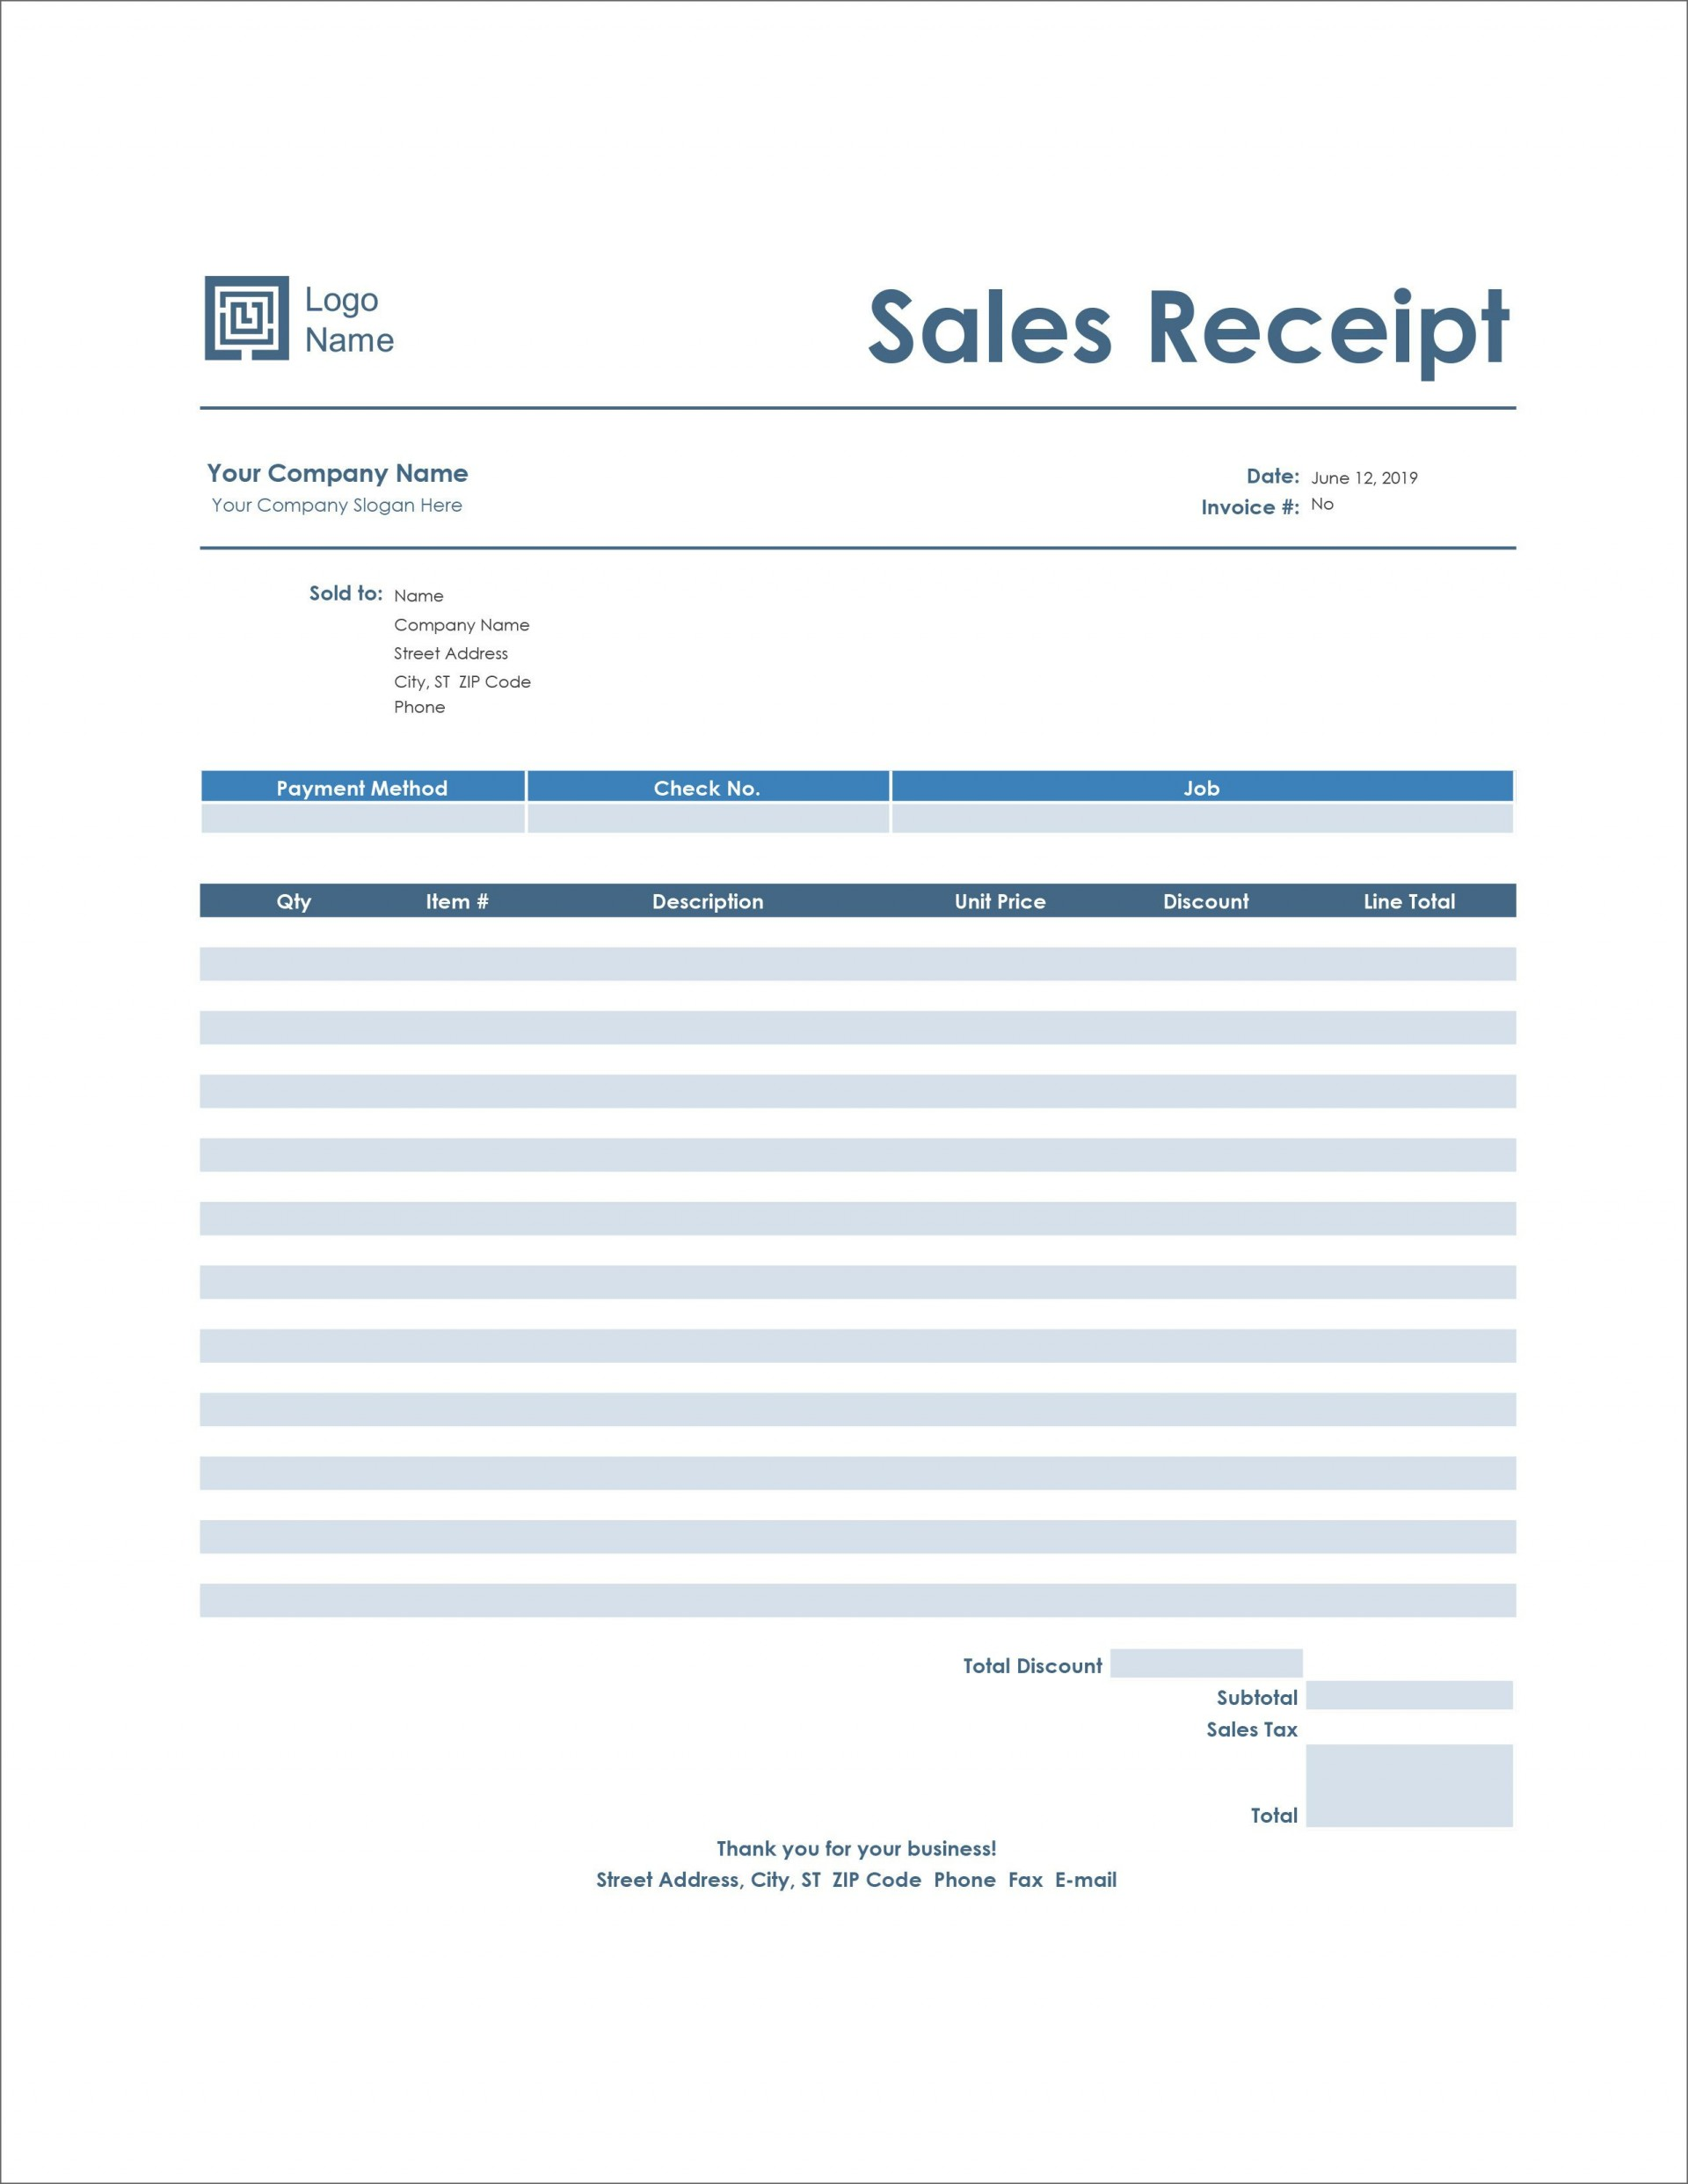 006 Staggering Receipt Template Microsoft Word Design  Payment Sample Invoice1920